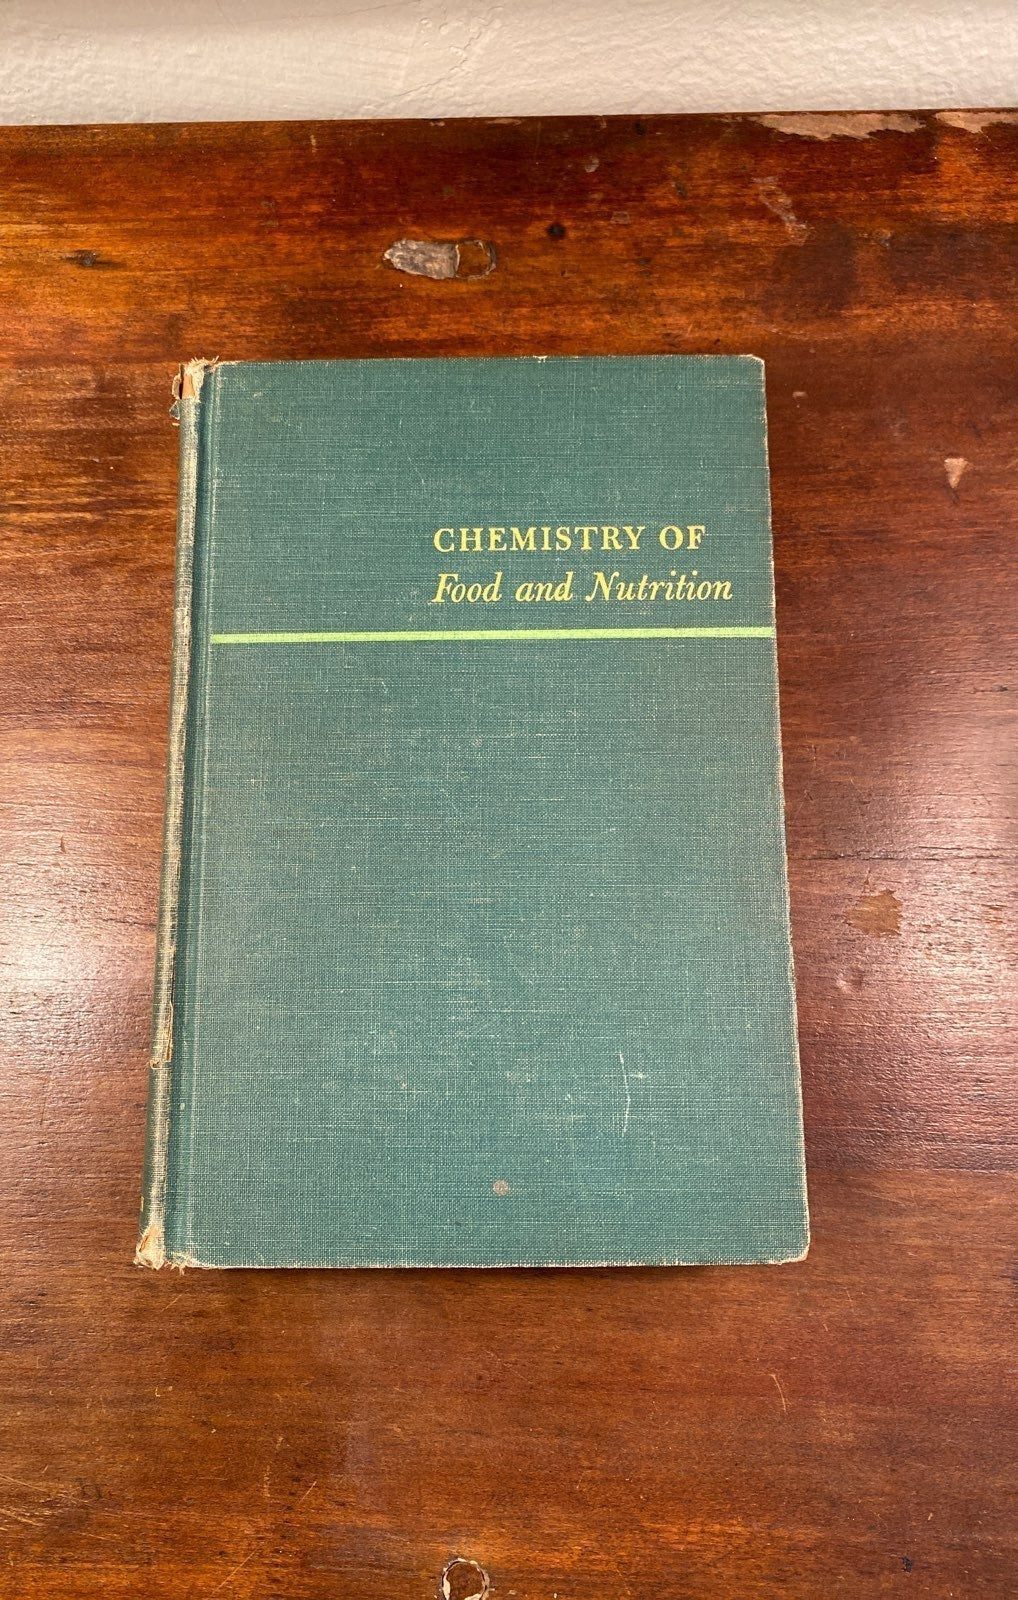 1952 Chemistry of Food and Nutrition